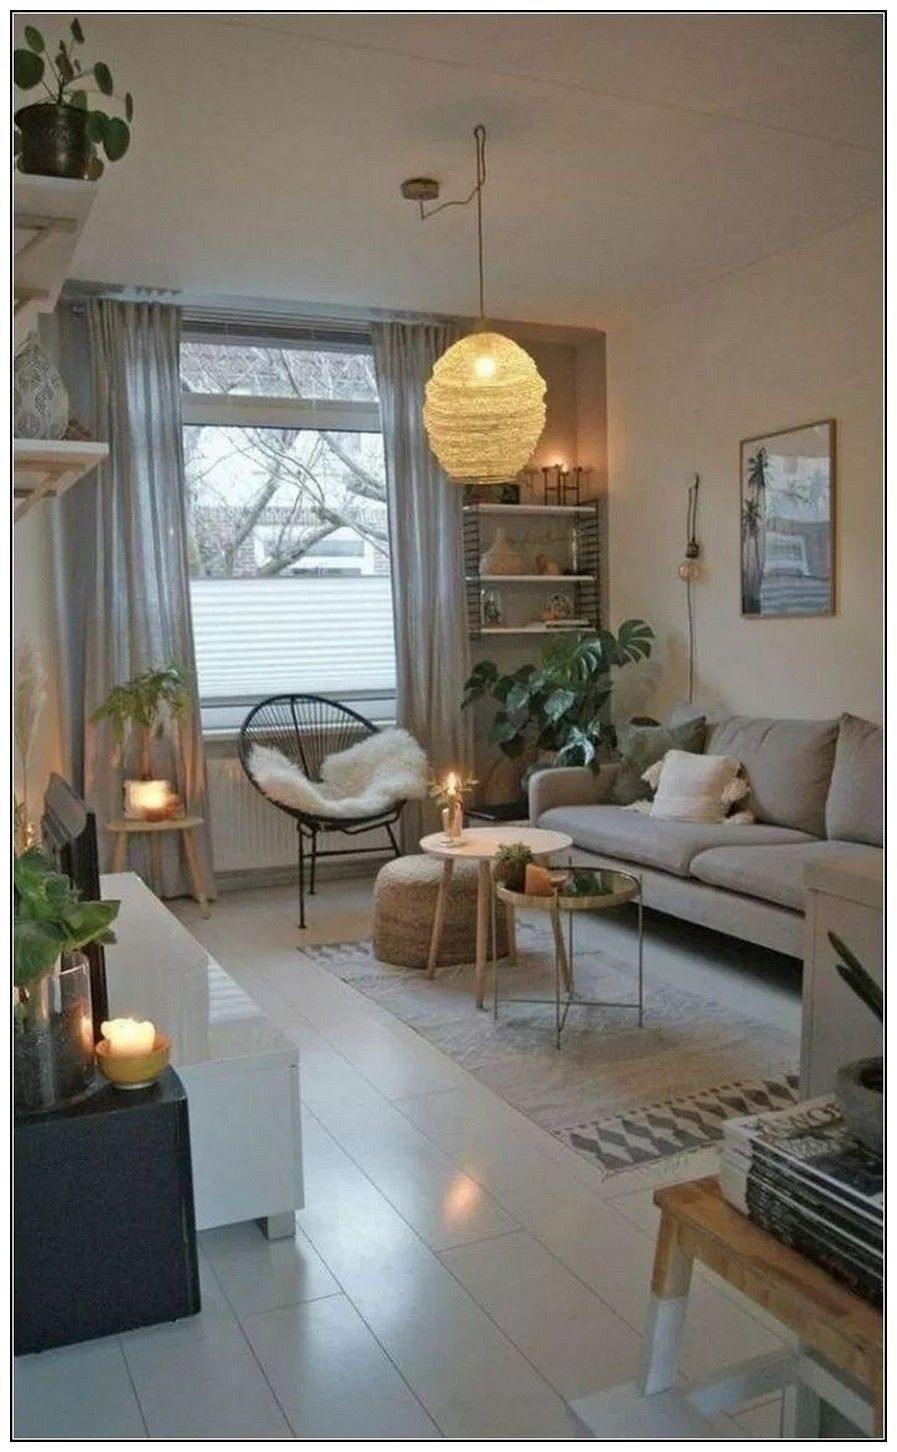 16 Decorating Ideas for A Small Living Room 16 in 16  Small